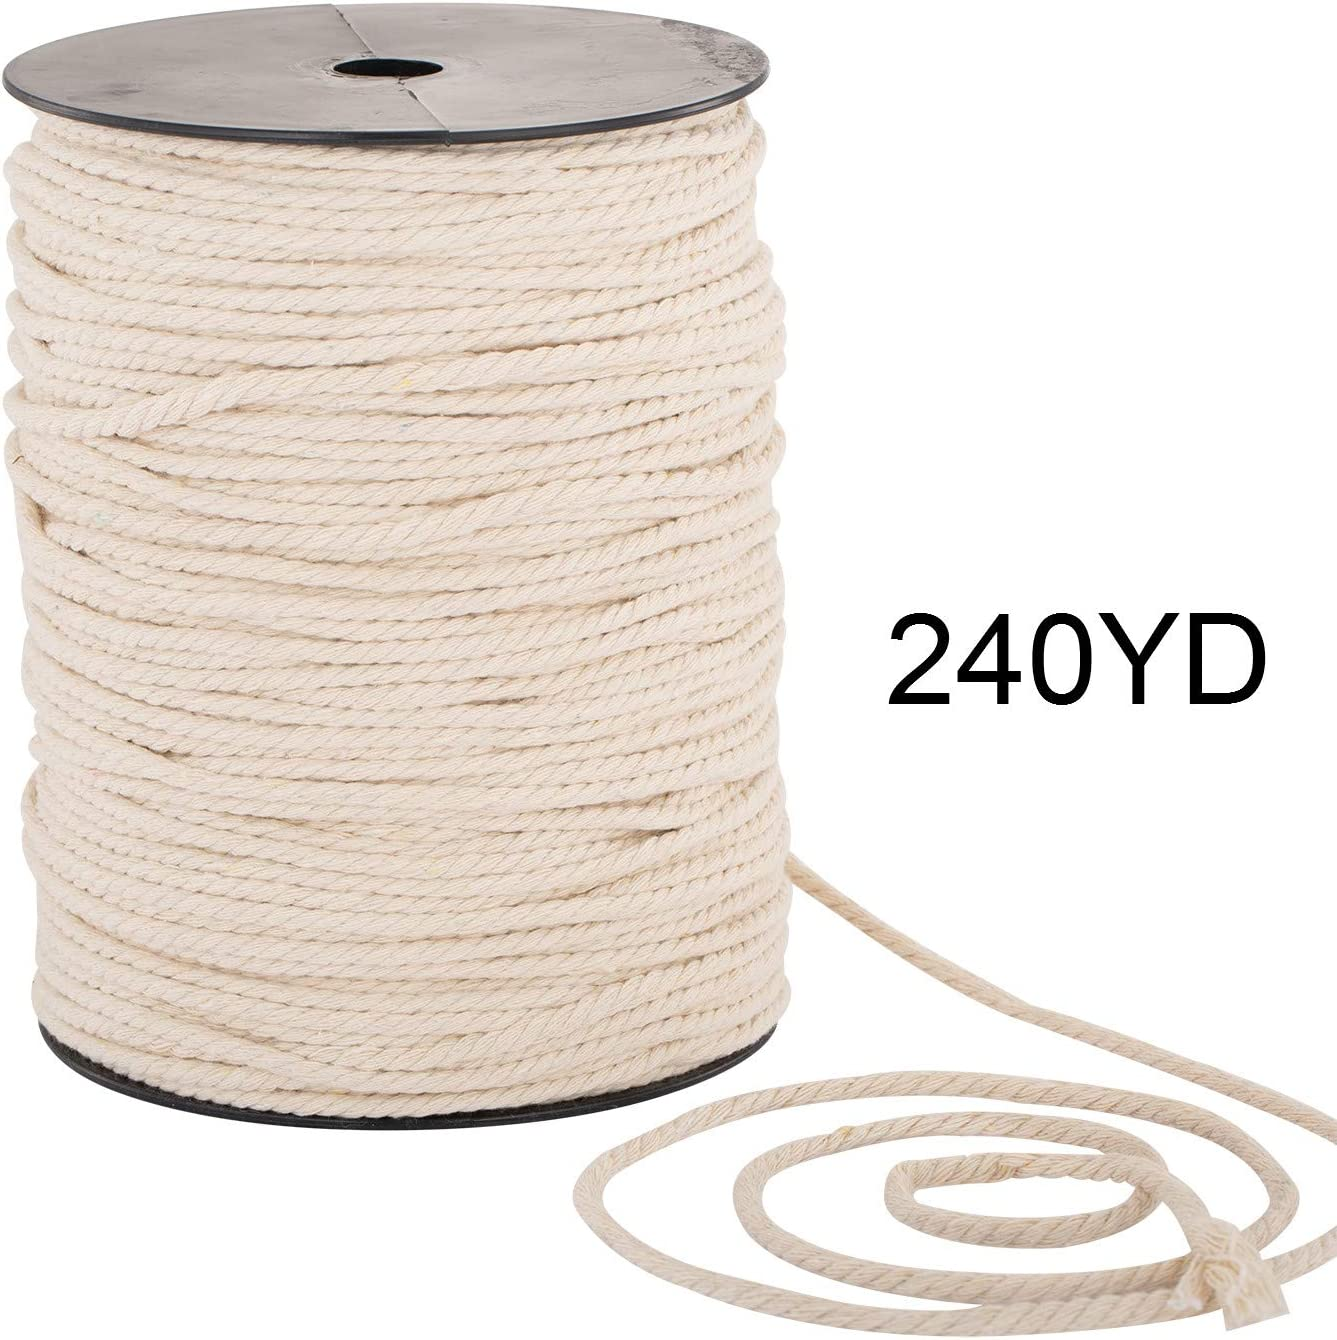 Macrame Cord 4mm x 240yd | 100% Natual Cotton Macrame Rope | 3 Strand Twisted Cotton Cord for Handmade Plant Hanger Wall Hanging Craft Making